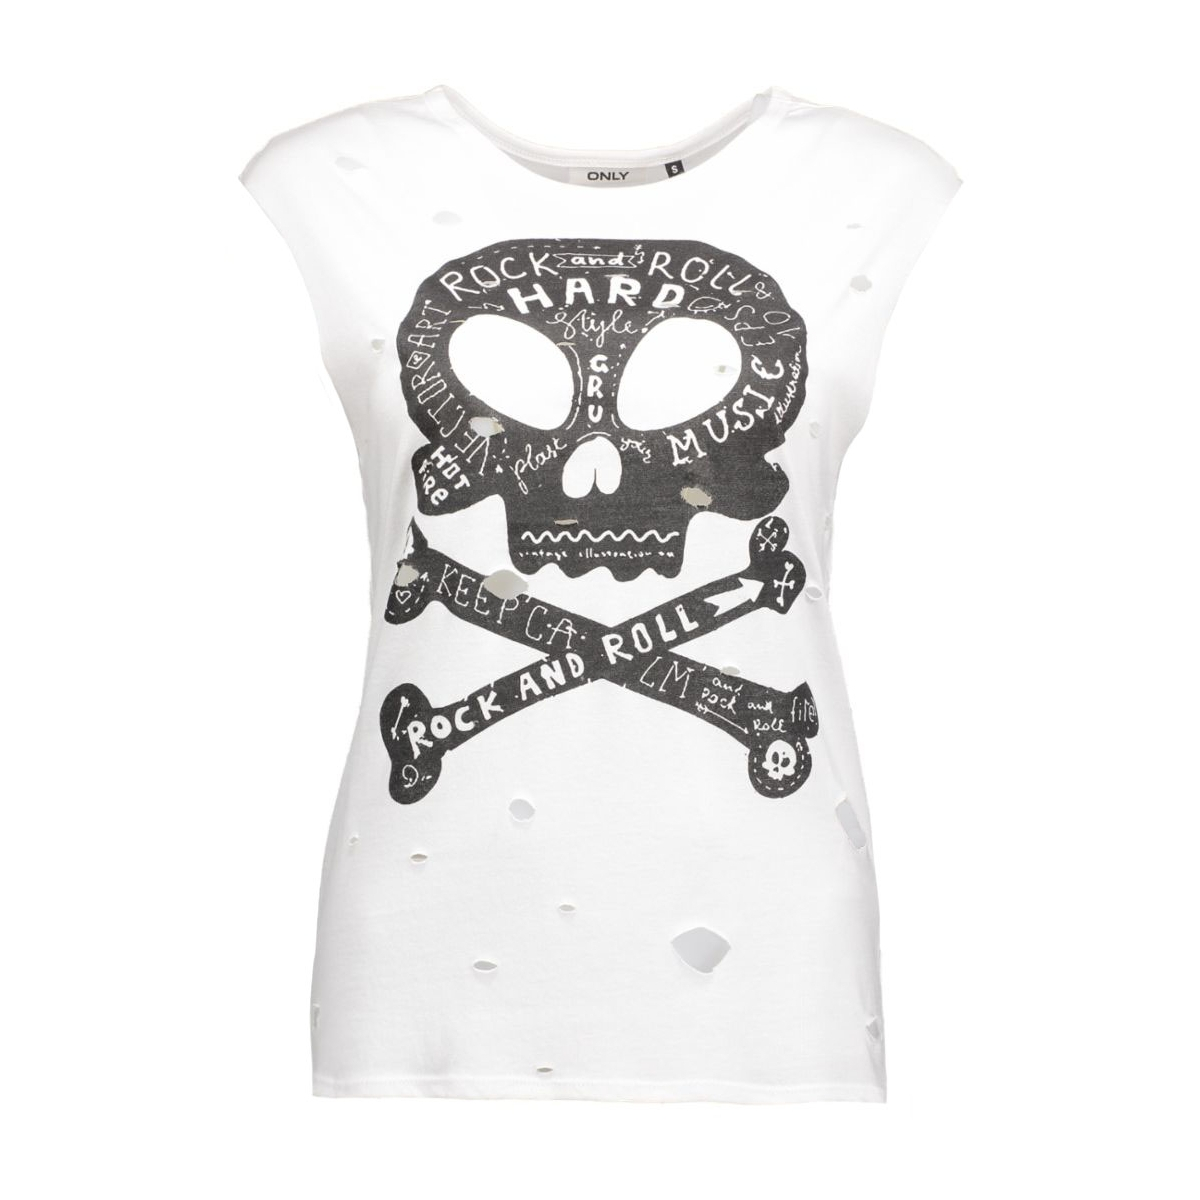 onlhard rock star s/l top box jrs 15124525 only top white/rock and r